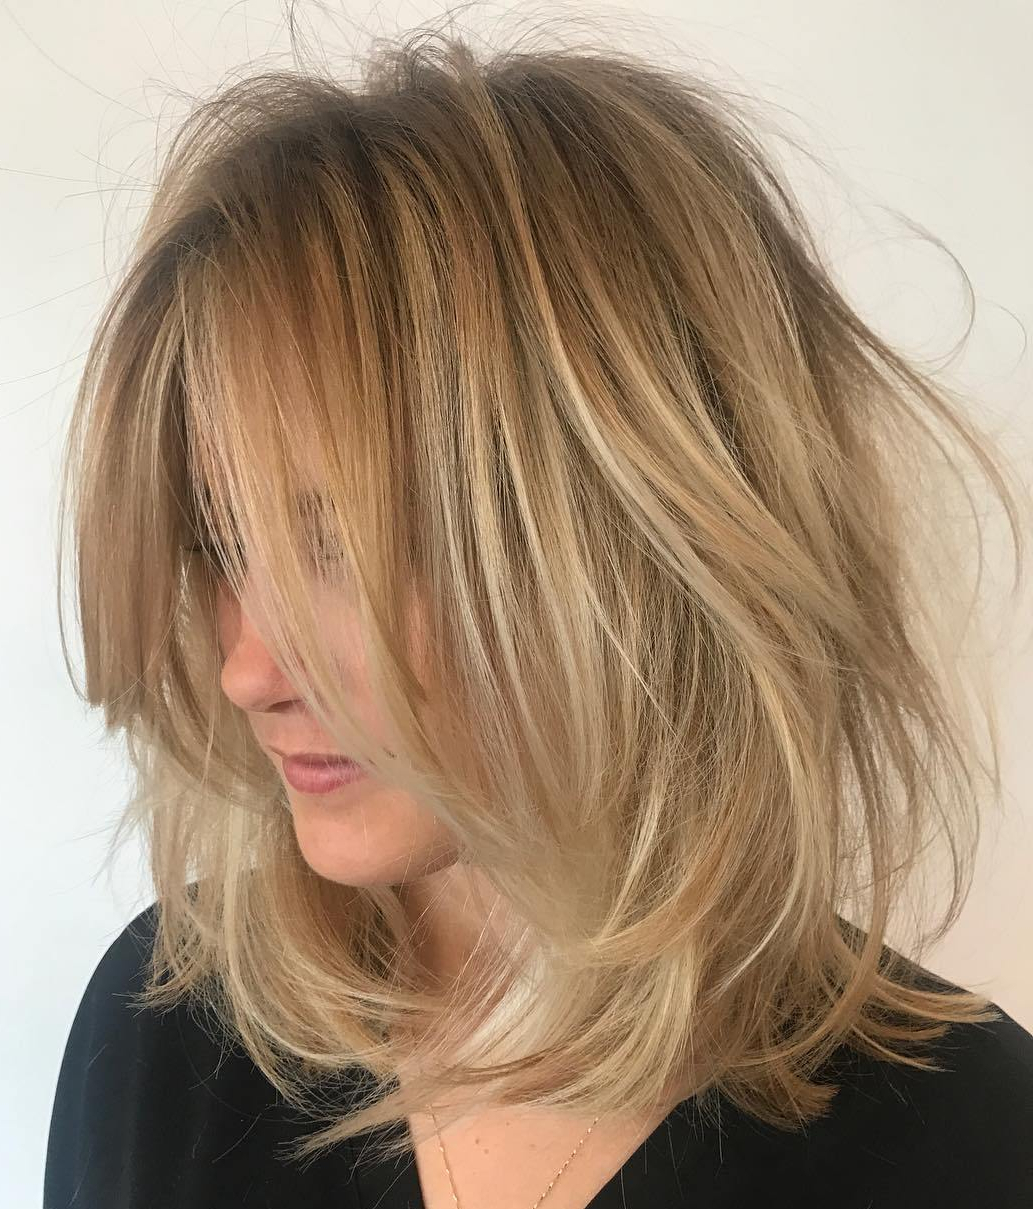 70 Devastatingly Cool Haircuts For Thin Hair In Tousled Beach Bob Hairstyles (View 14 of 20)